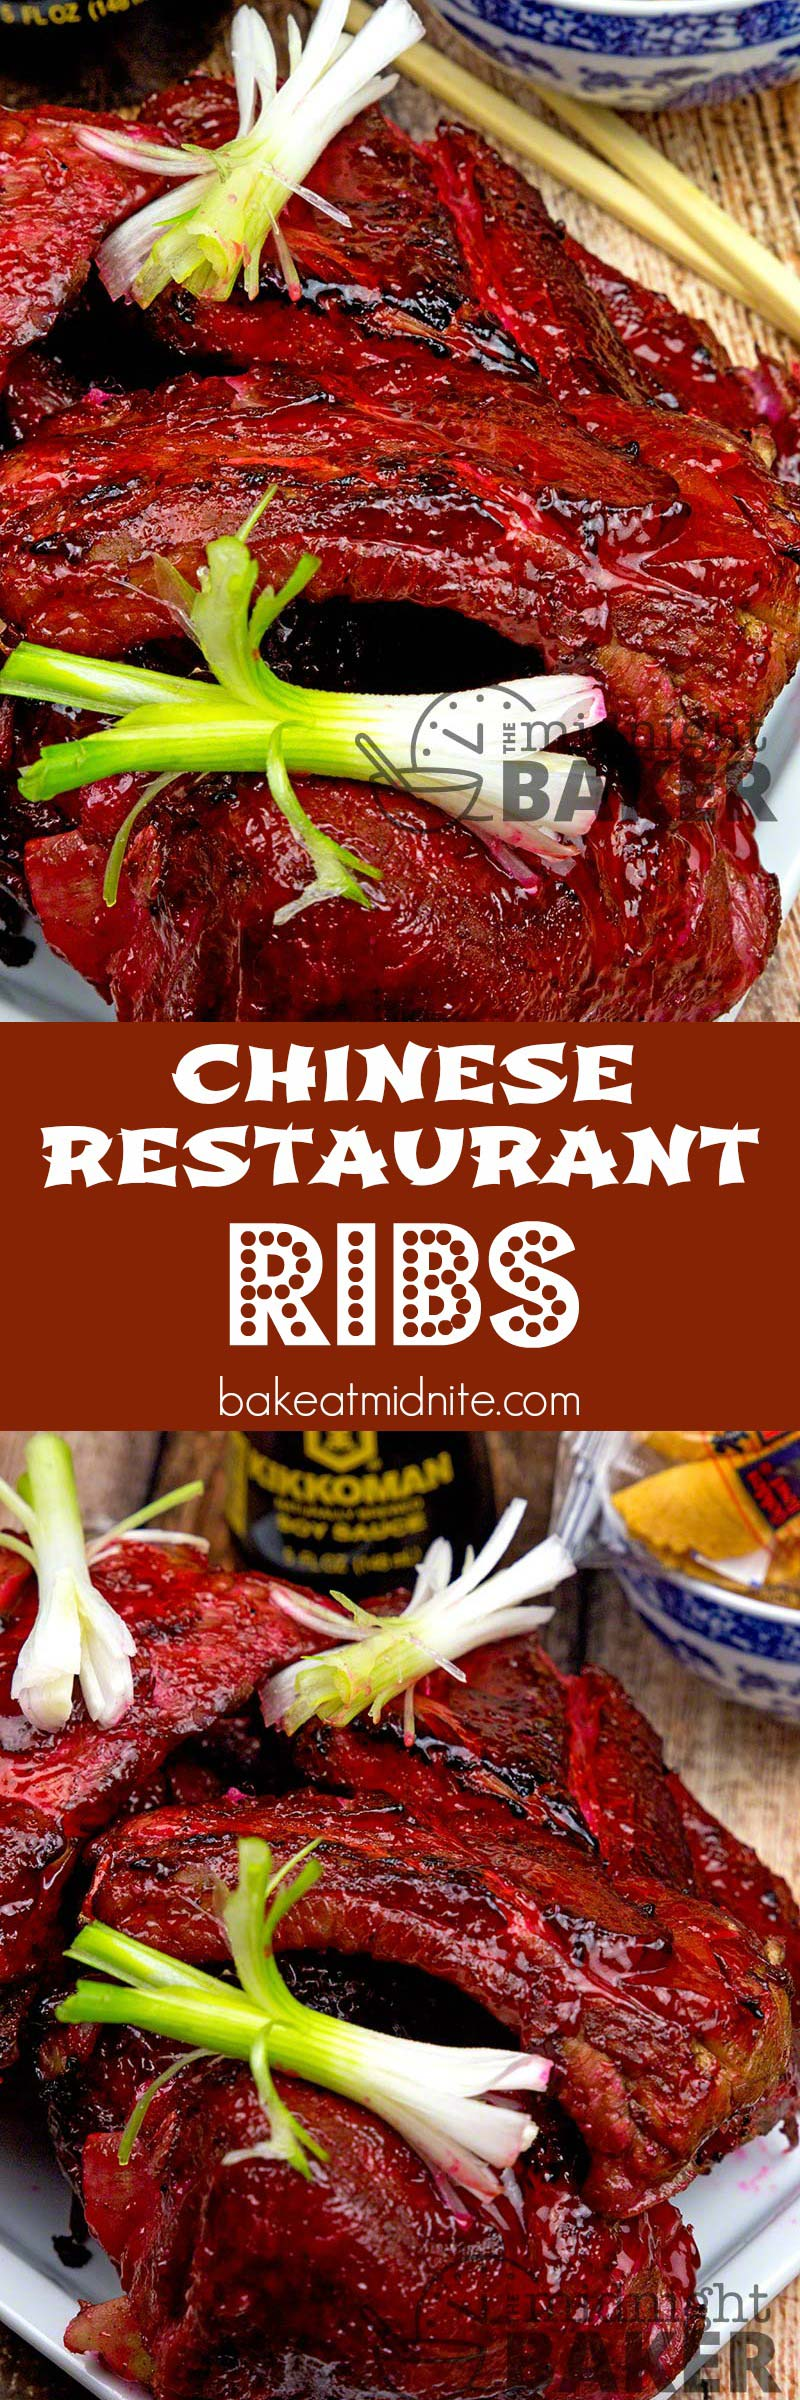 Like the ribs at the Chinese restaurant? Make them at home!